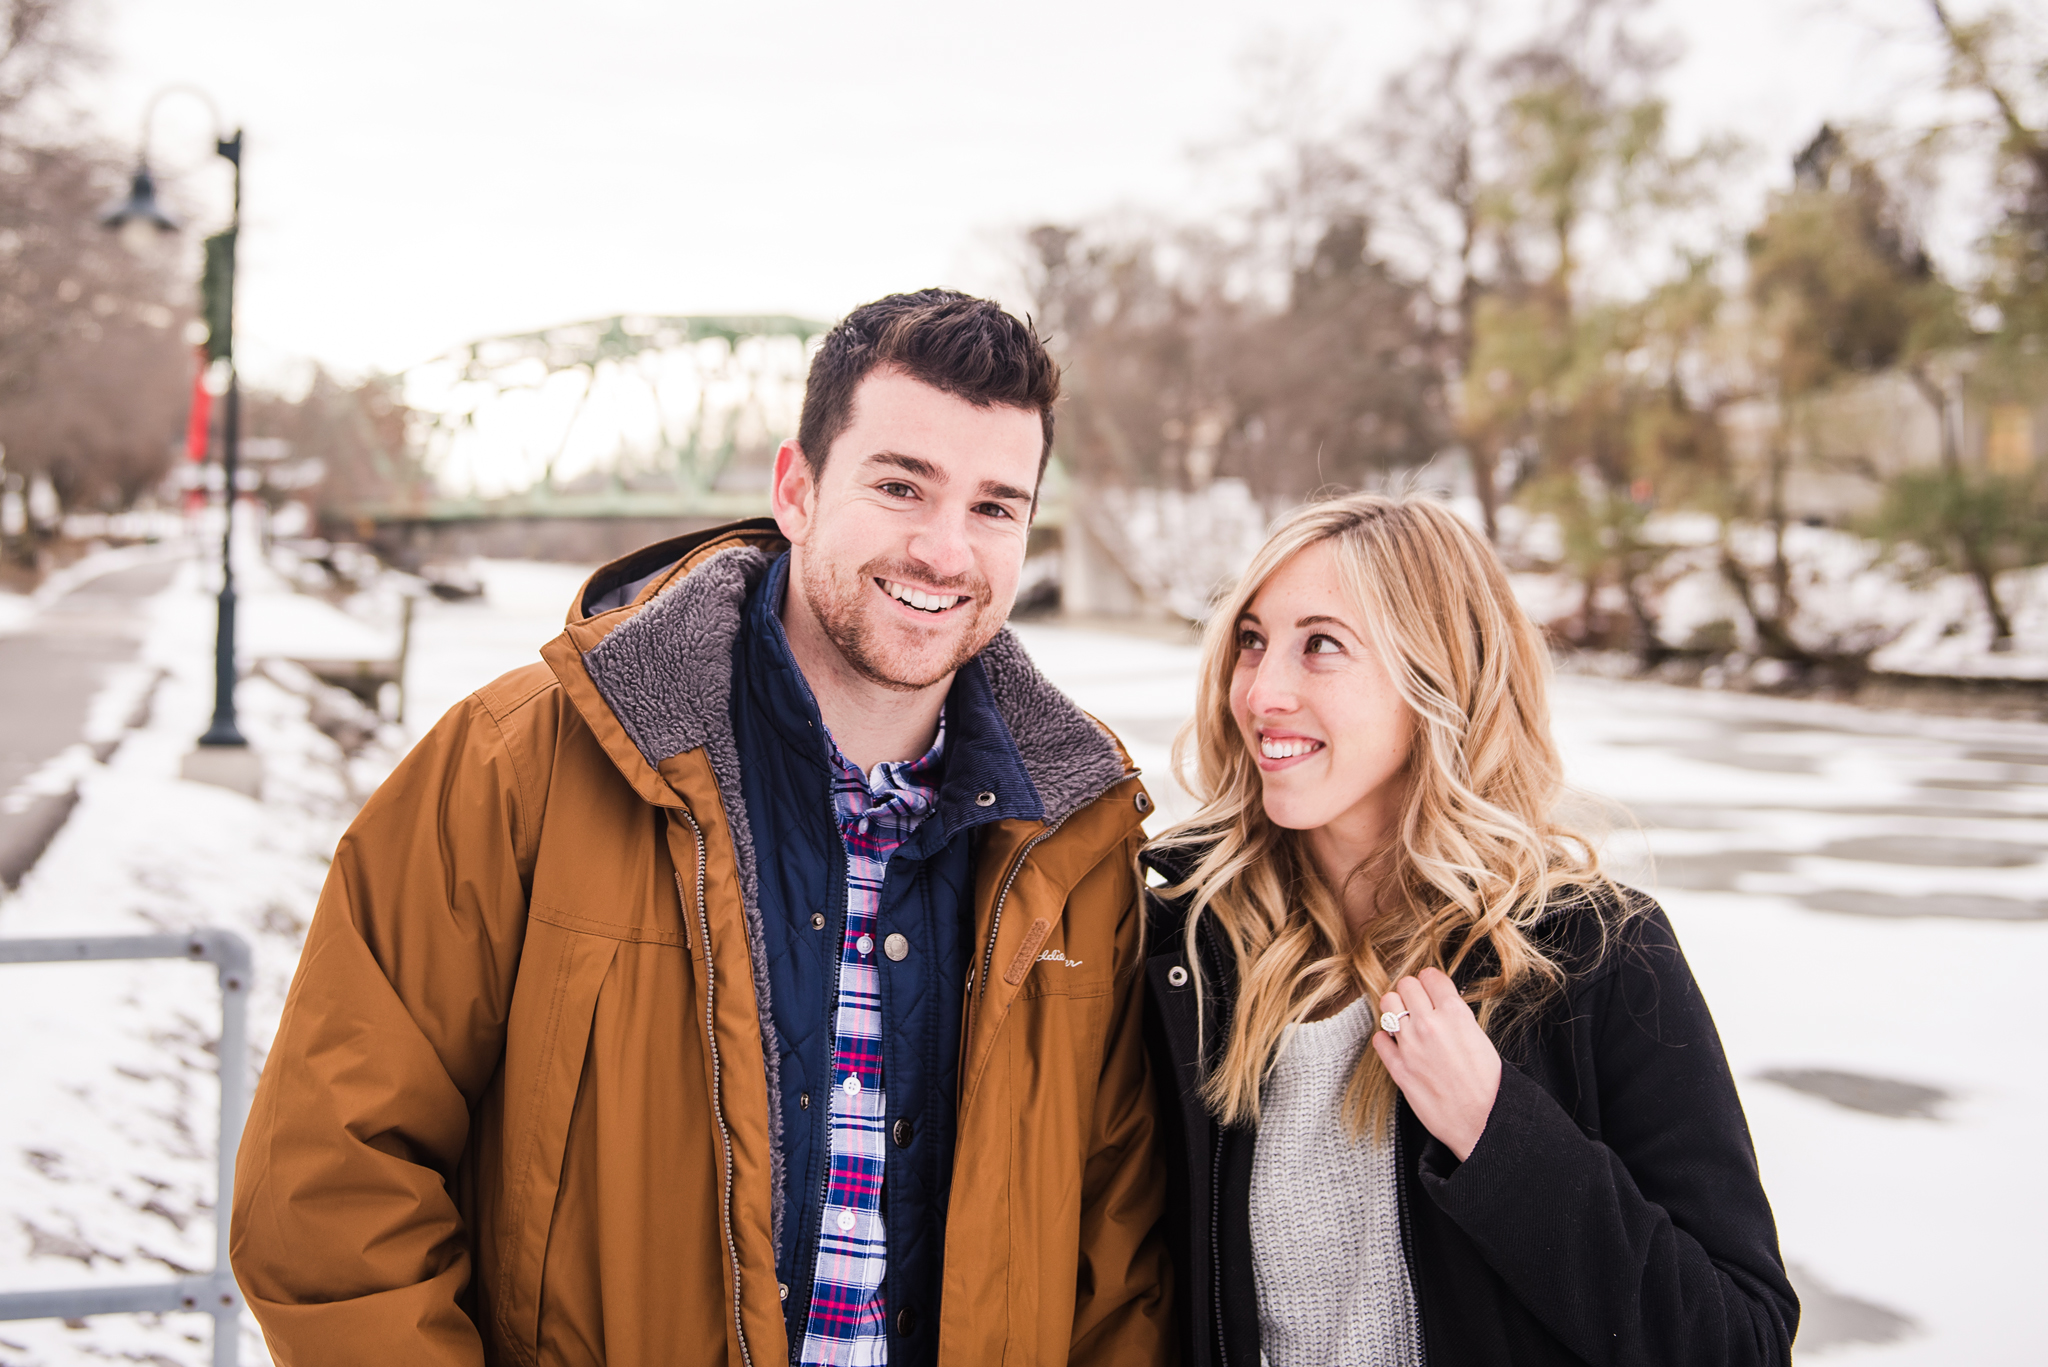 Schoen_Place_Rochester_Engagement_Session_JILL_STUDIO_Rochester_NY_Photographer_DSC_1157.jpg